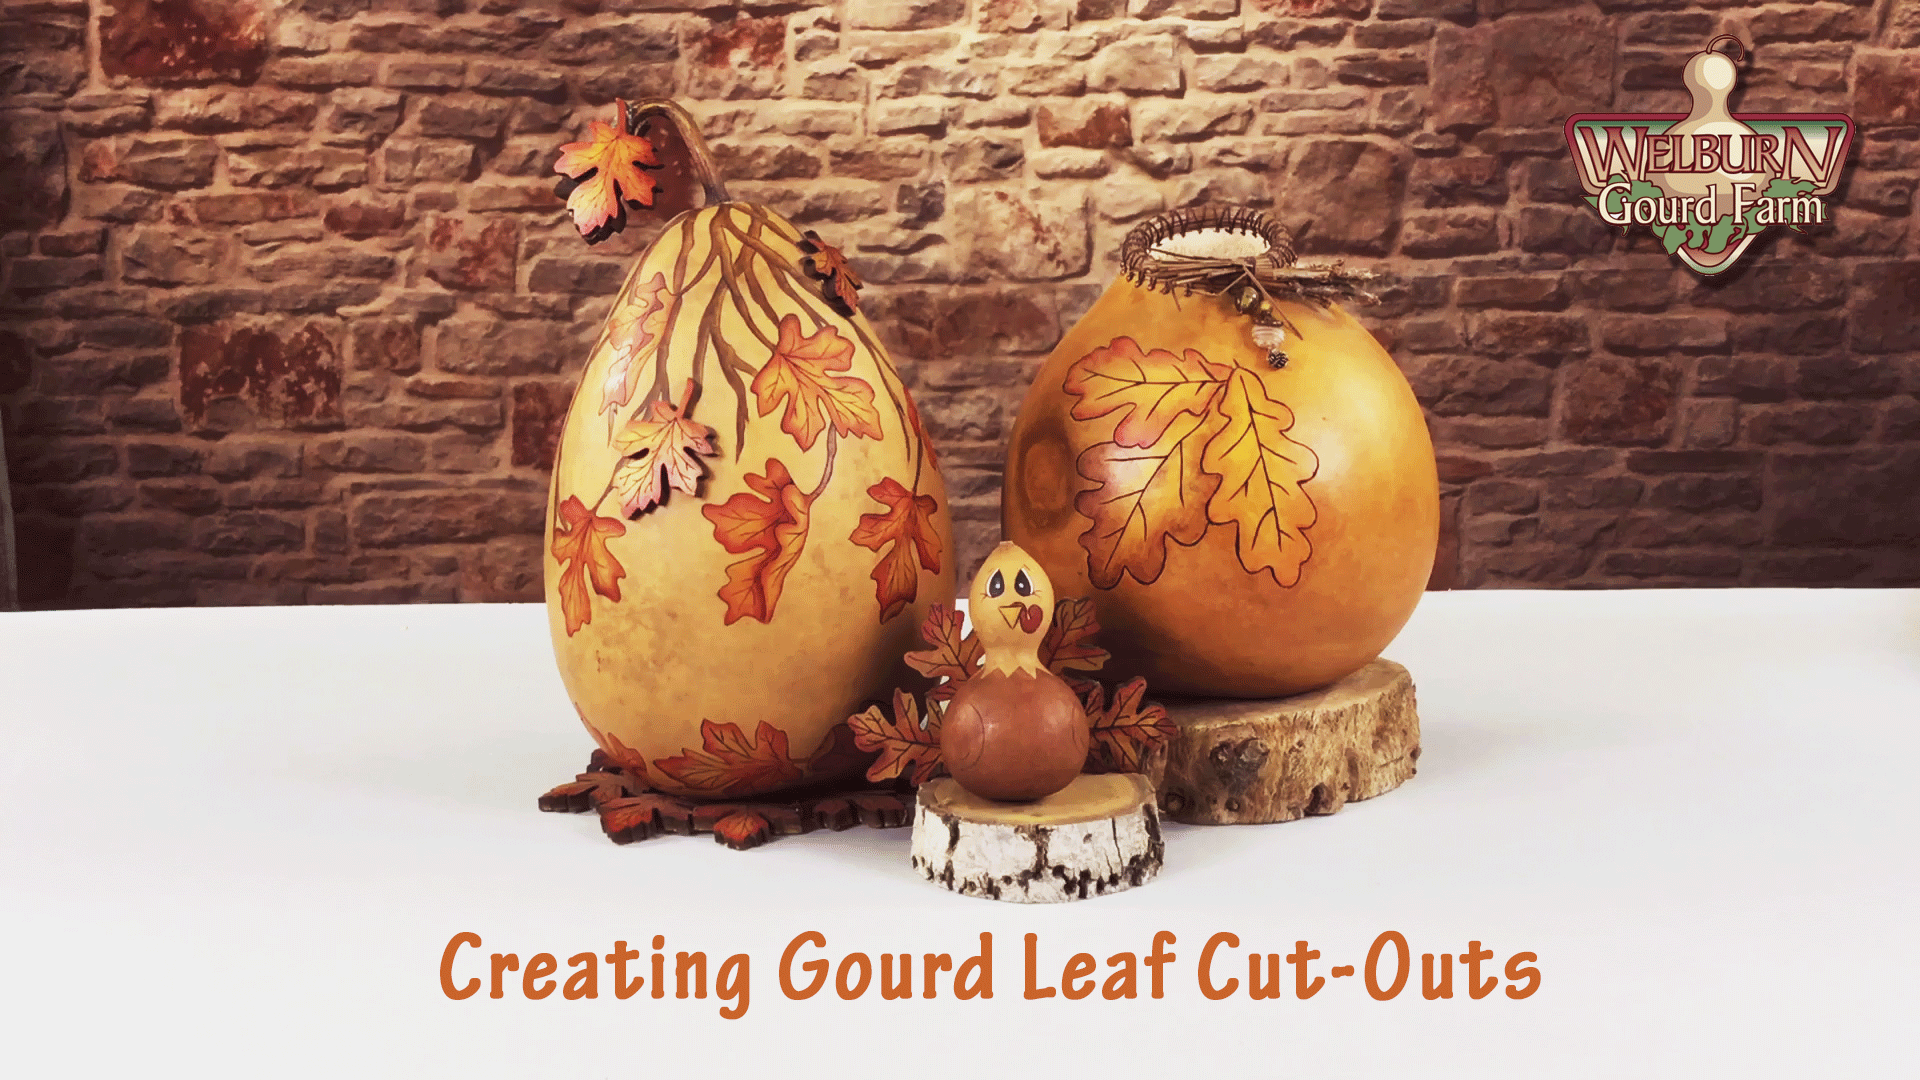 Creating a Gourd Leaf Cut-Out